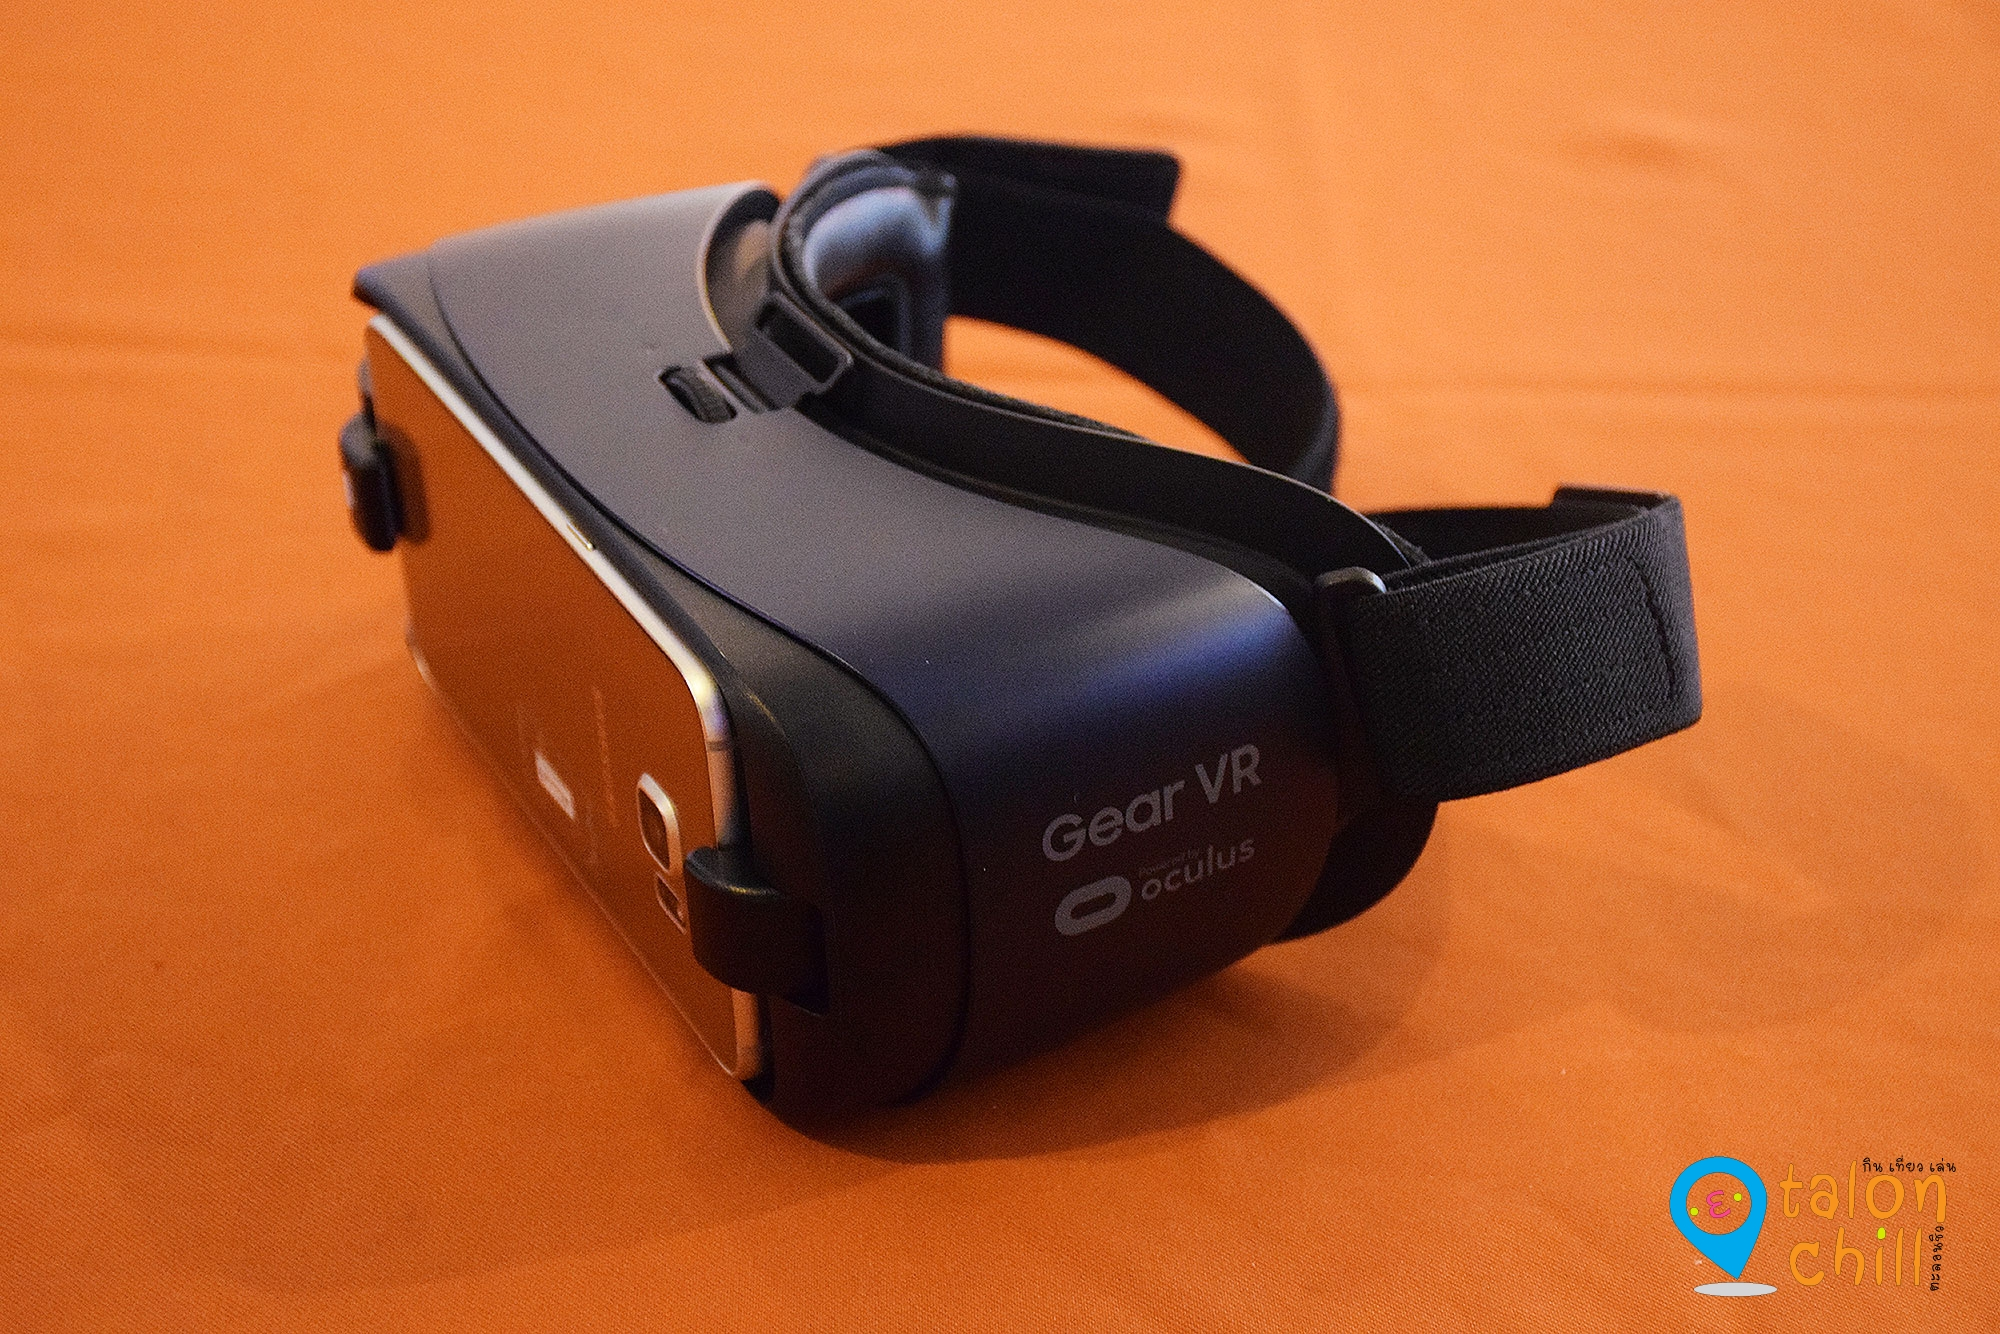 review samsung gear vr by oculus ouija 2 360 vr 16